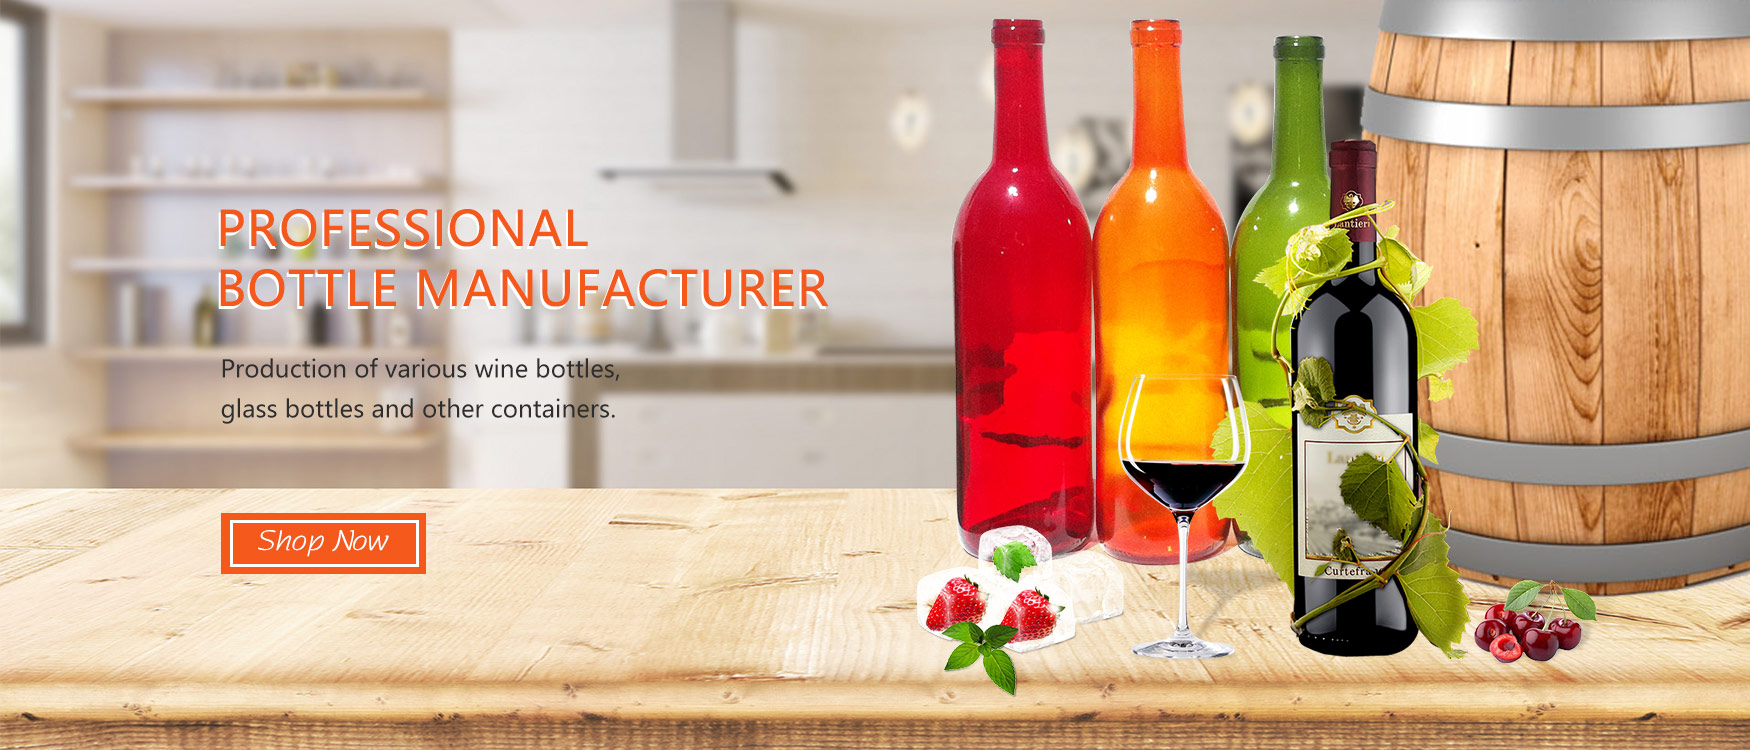 Professional  bottle manufacturer